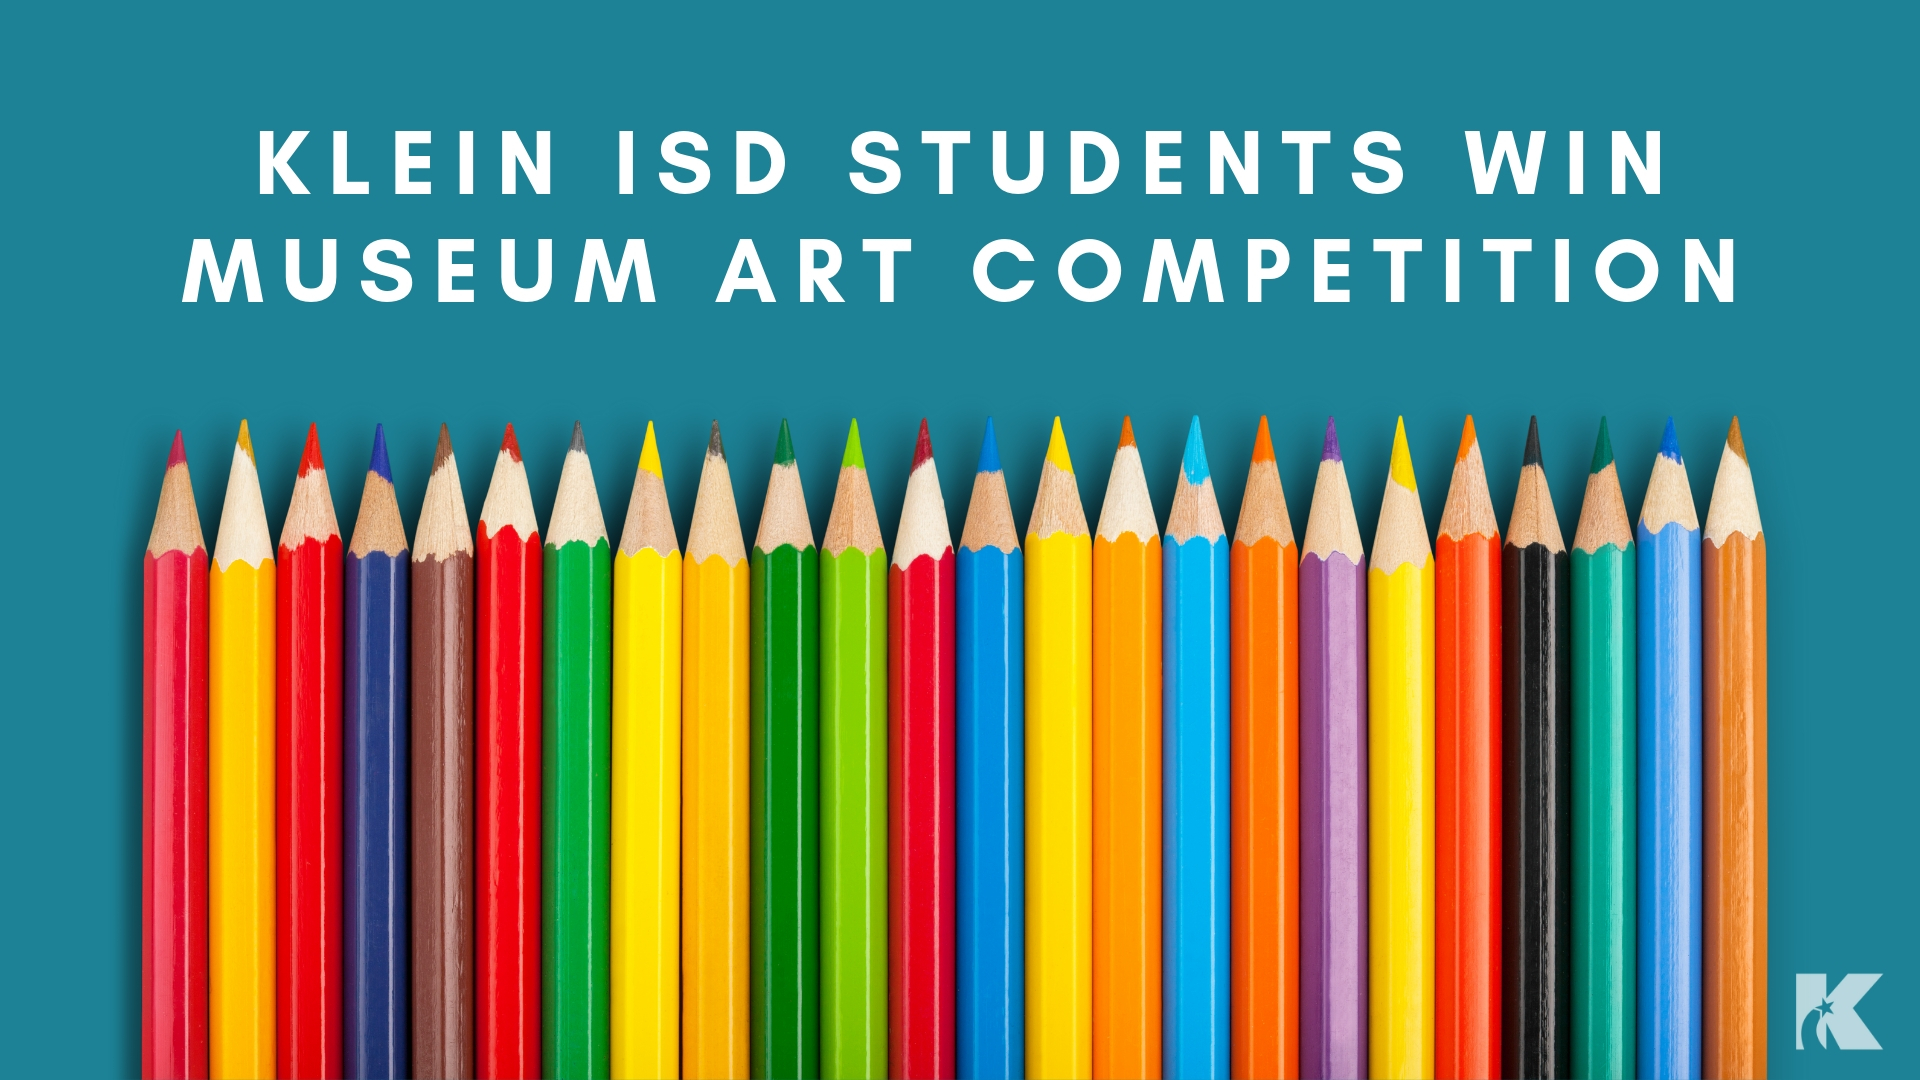 Klein ISD Students Win Museum Art Competition